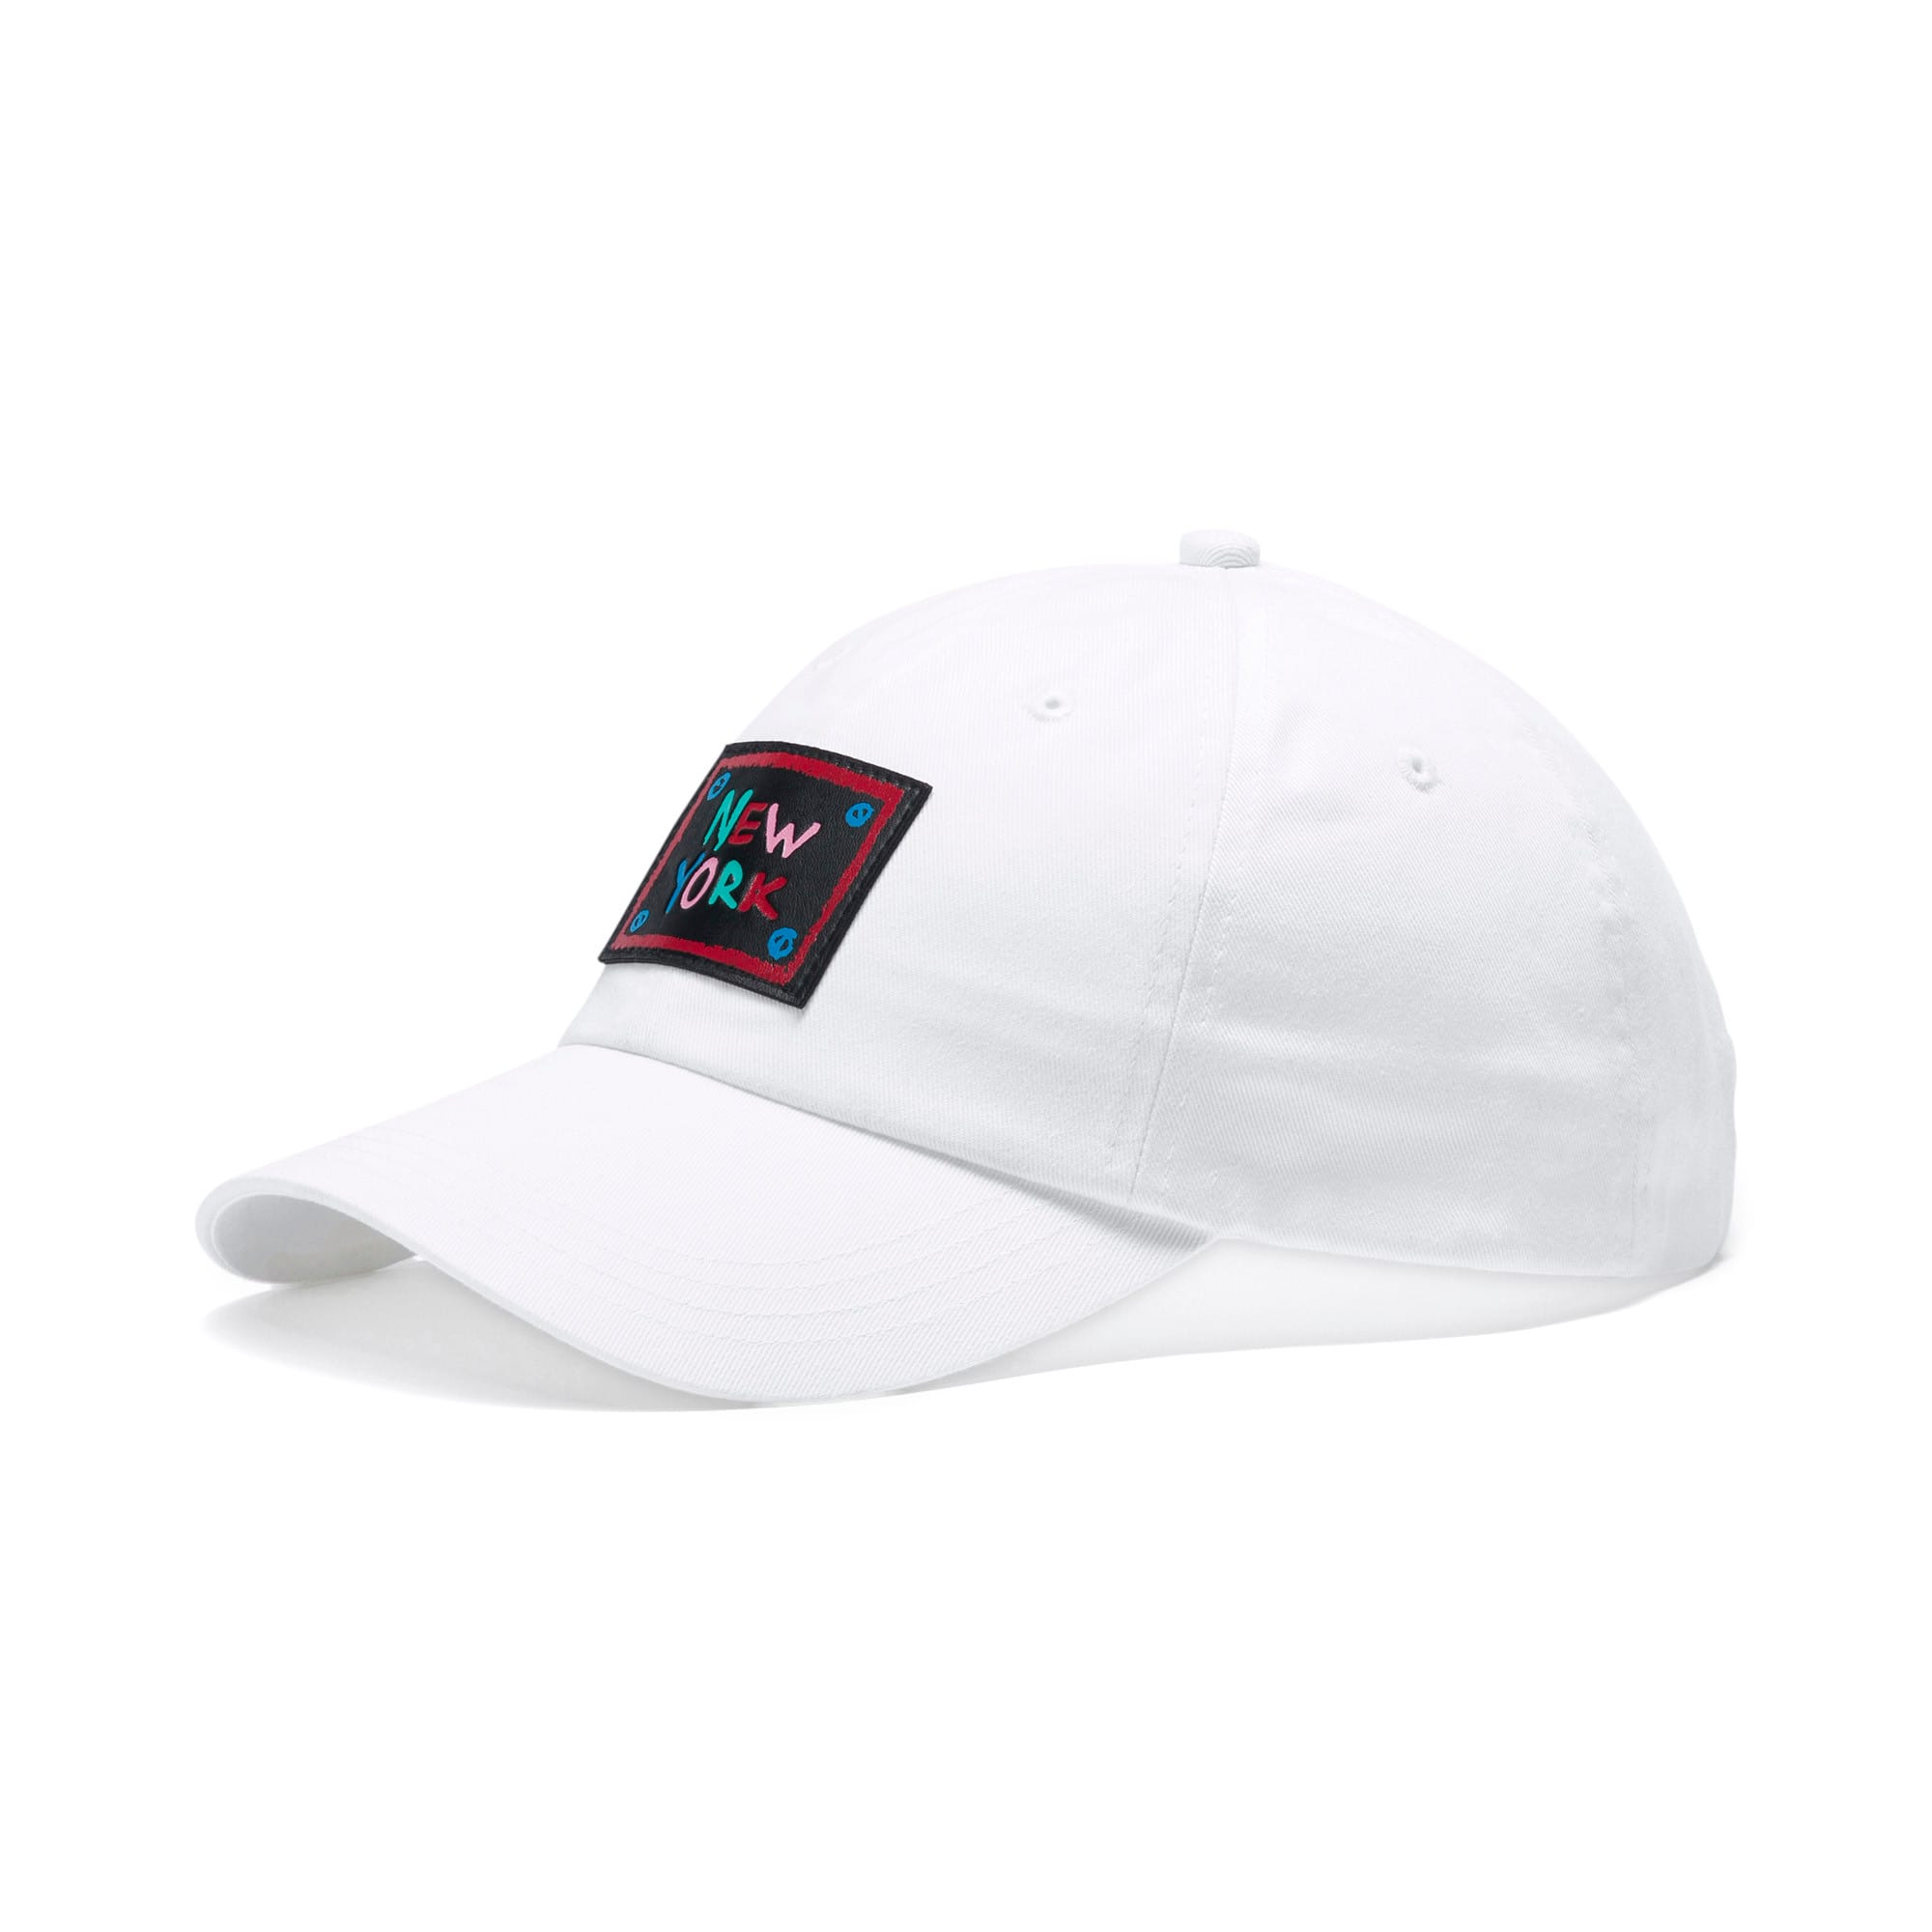 Thumbnail 1 of PUMA x BRADLEY THEODORE Cap, Puma White, medium